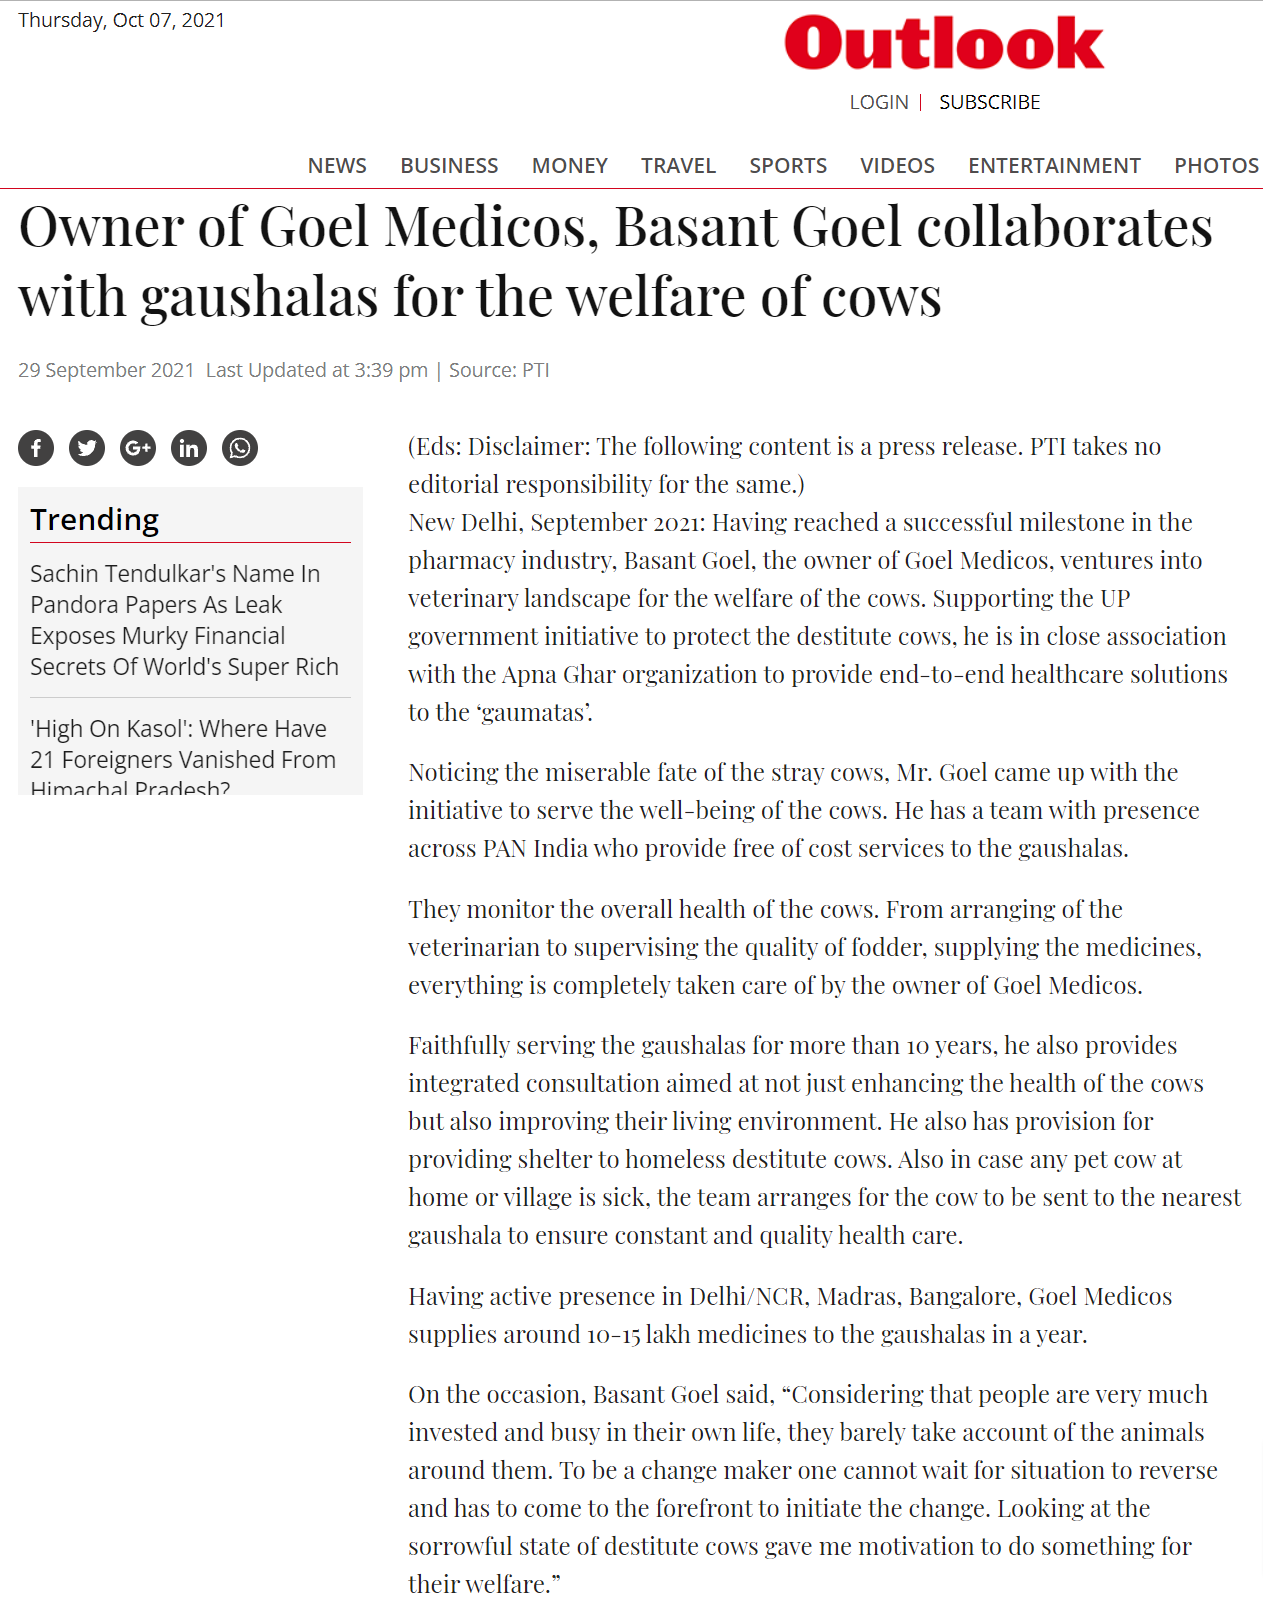 Owner of Goel Medicos, Basant Goel collaborates with gaushalas for the welfare of cows